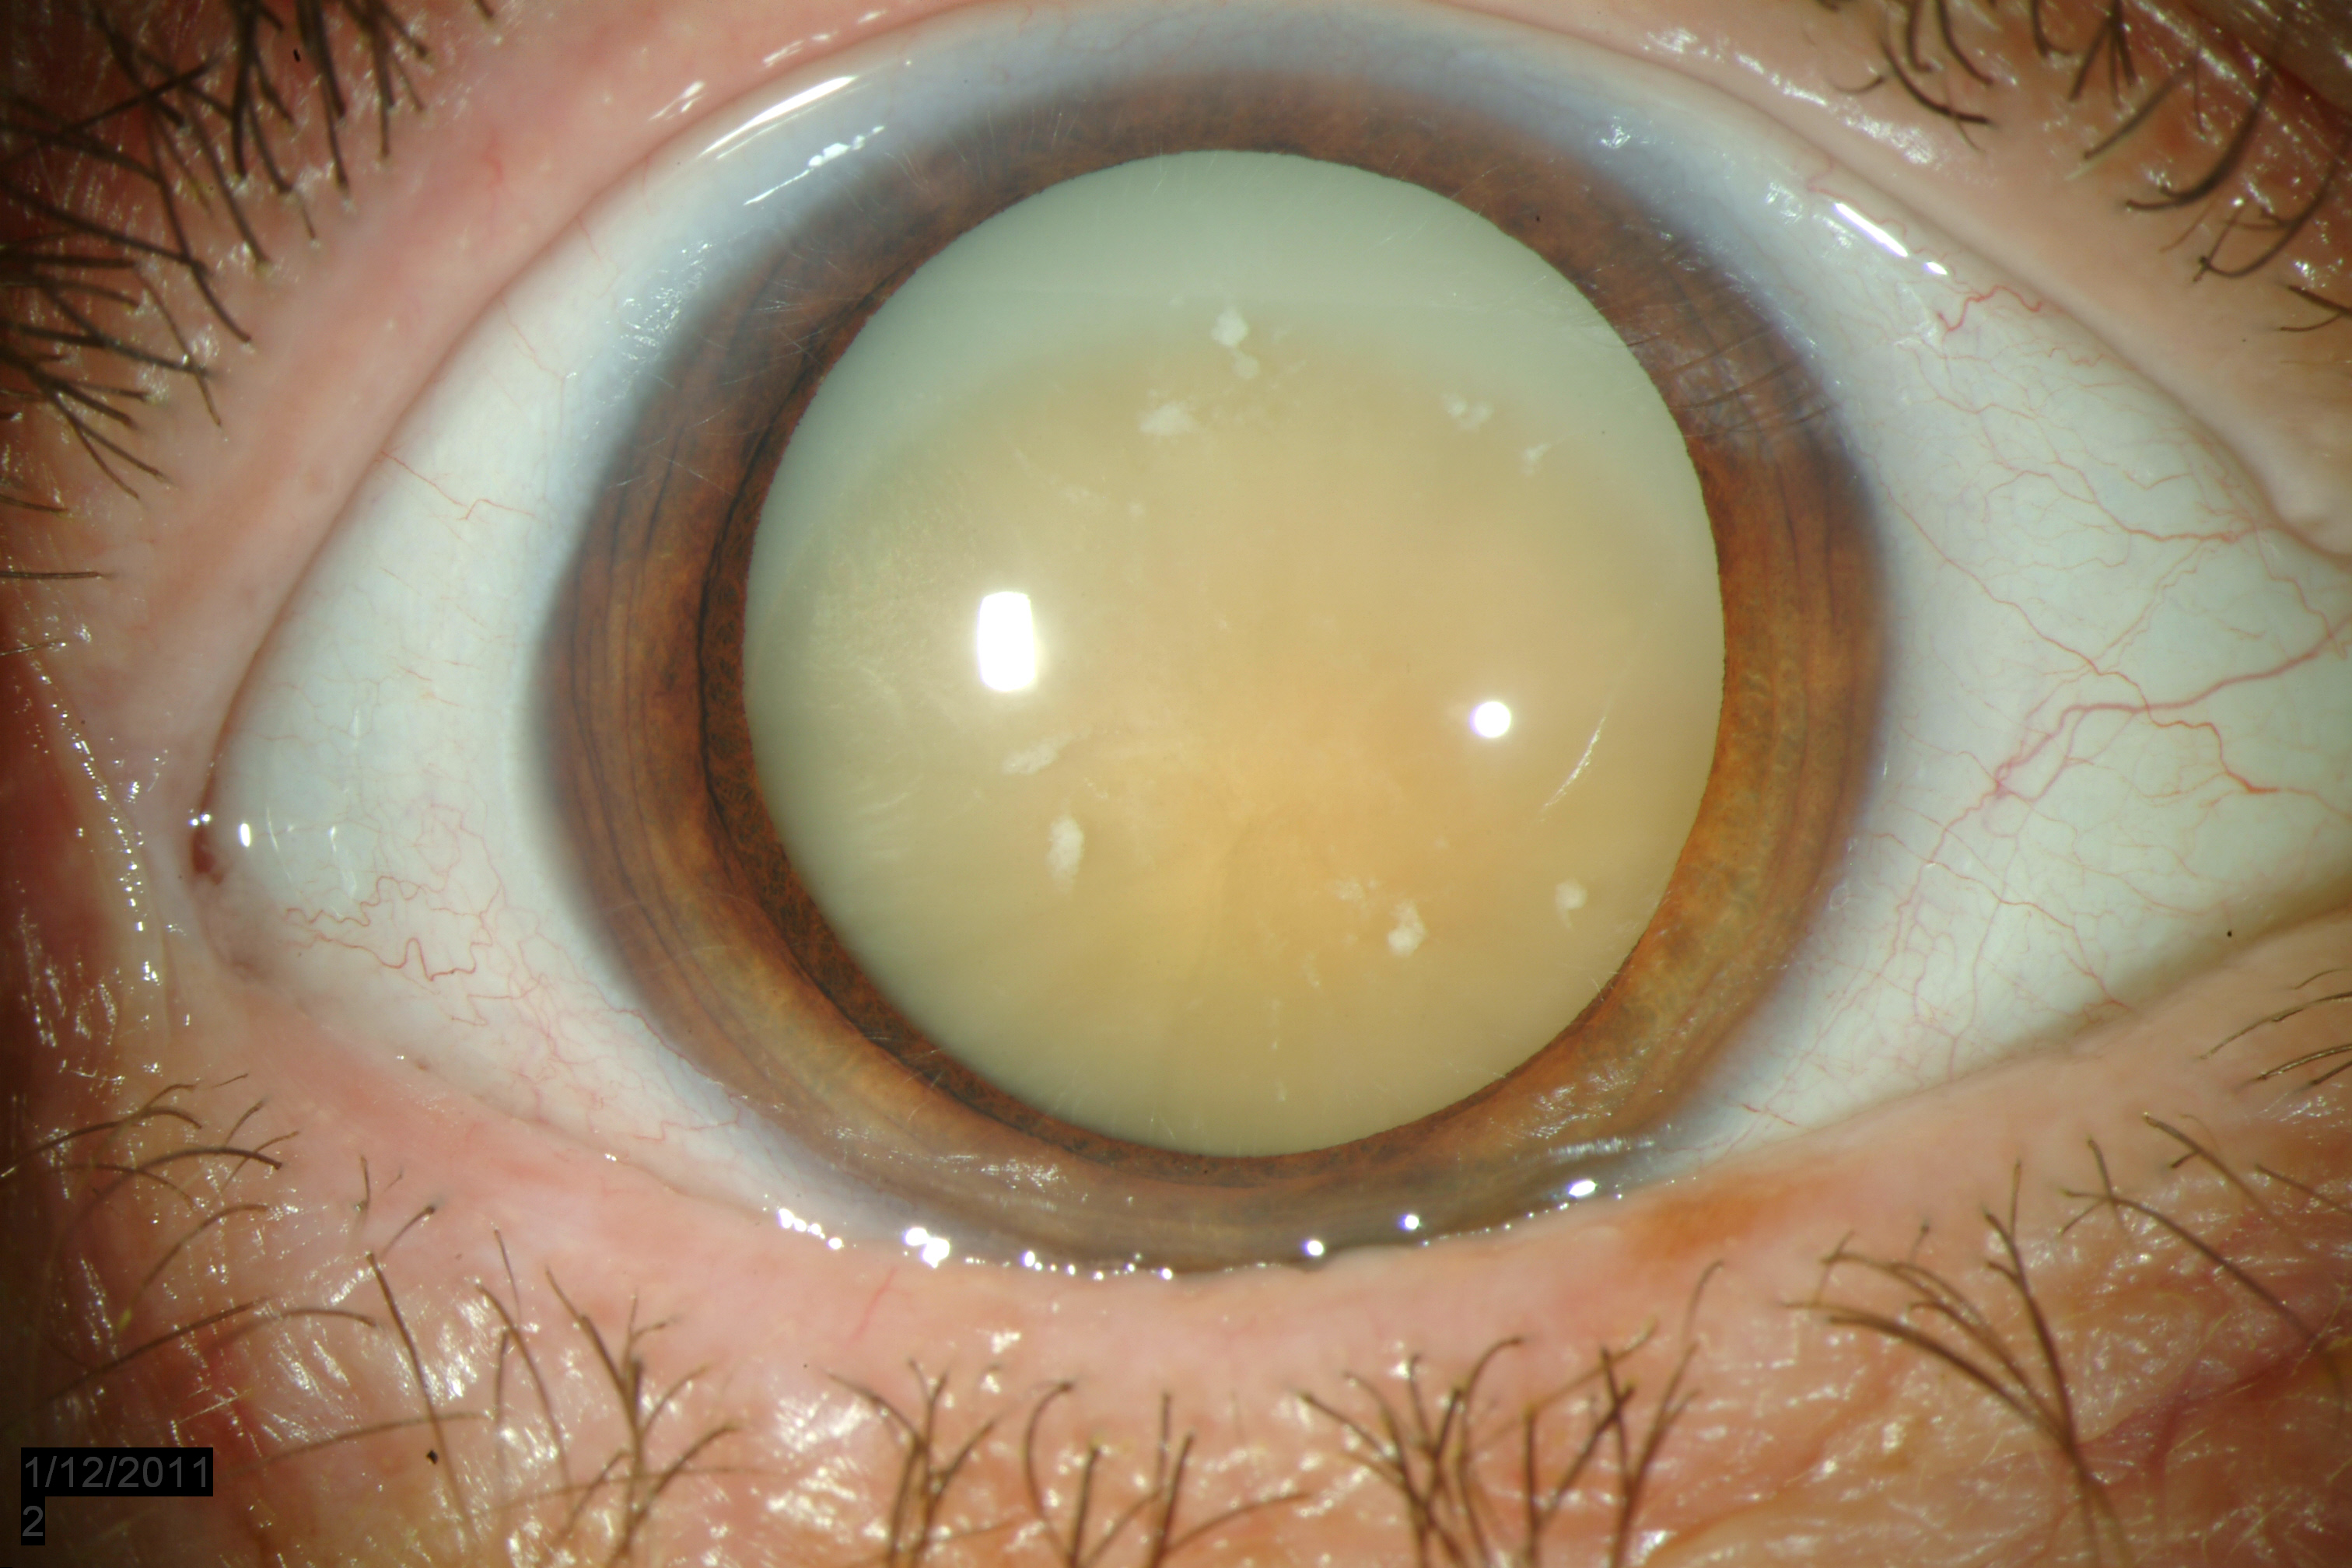 cataracts images